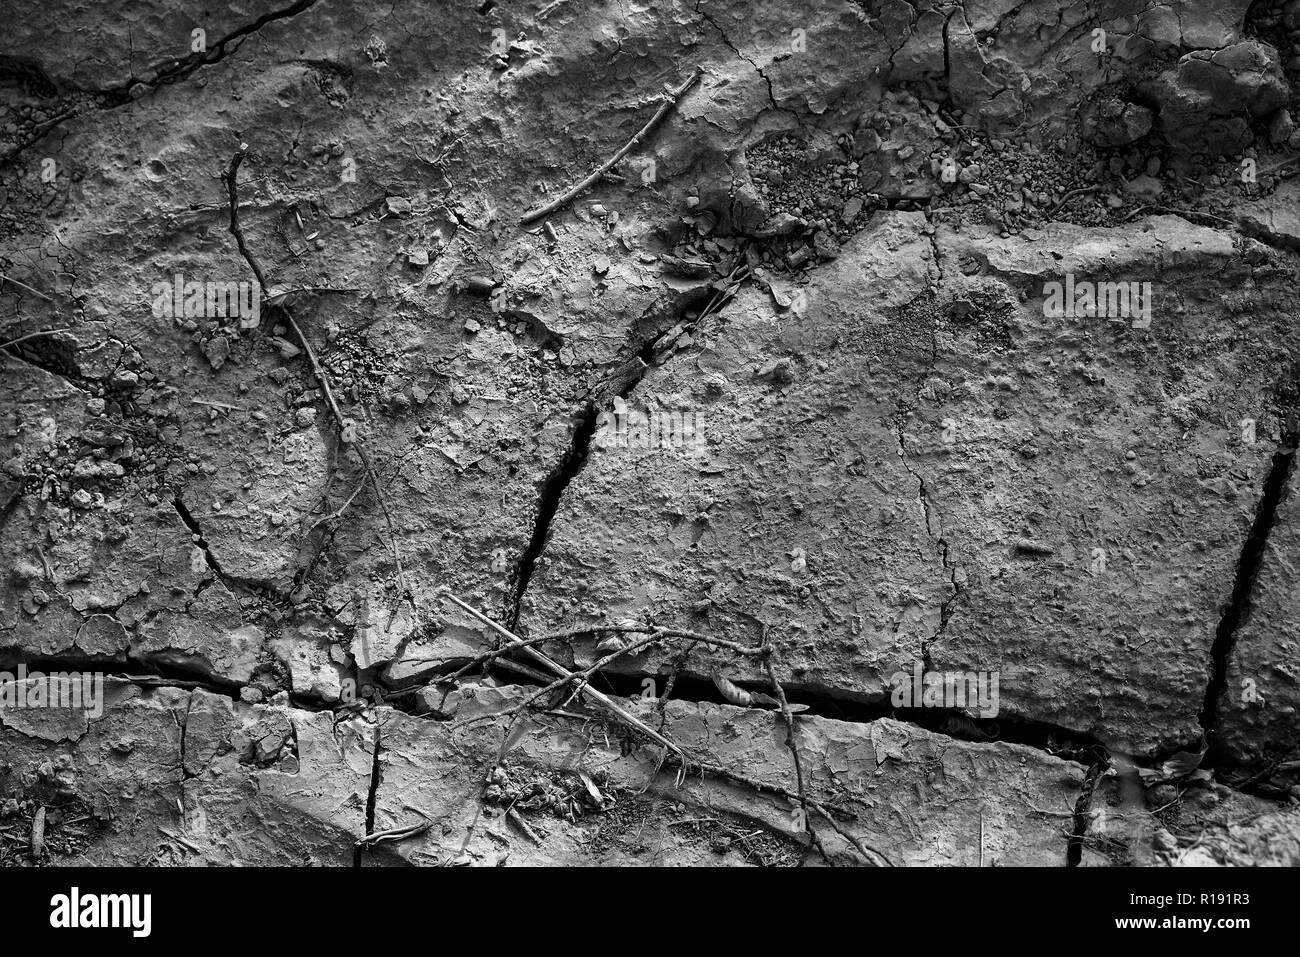 In the hot summer, the soil crusts. Deep cracks form. The surface of the soil is hard and dusty. - Stock Image